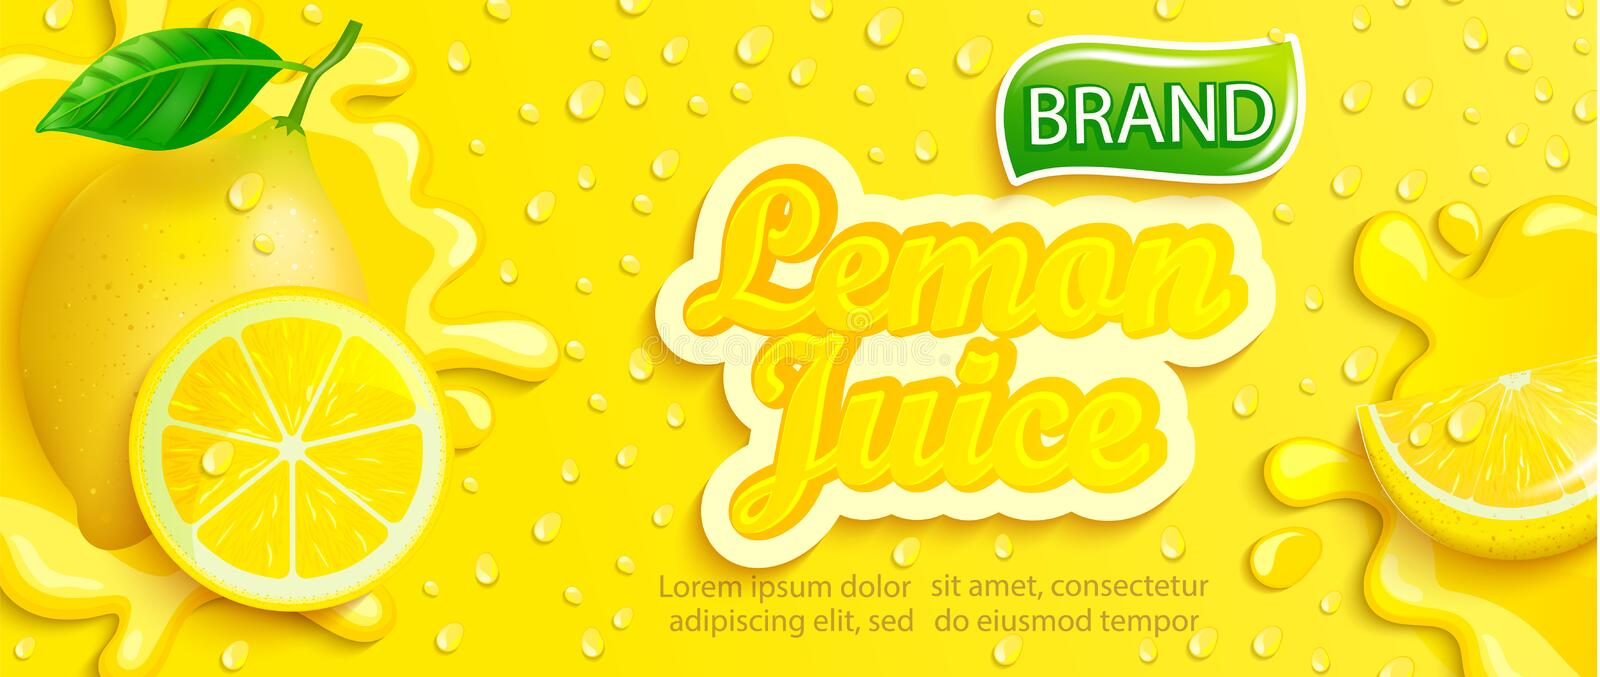 Fresh lemon juice splash banner with apteitic drops. From condensation, fruit slice on gradient yellow background for brand,logo, template,label,emblem,store vector illustration